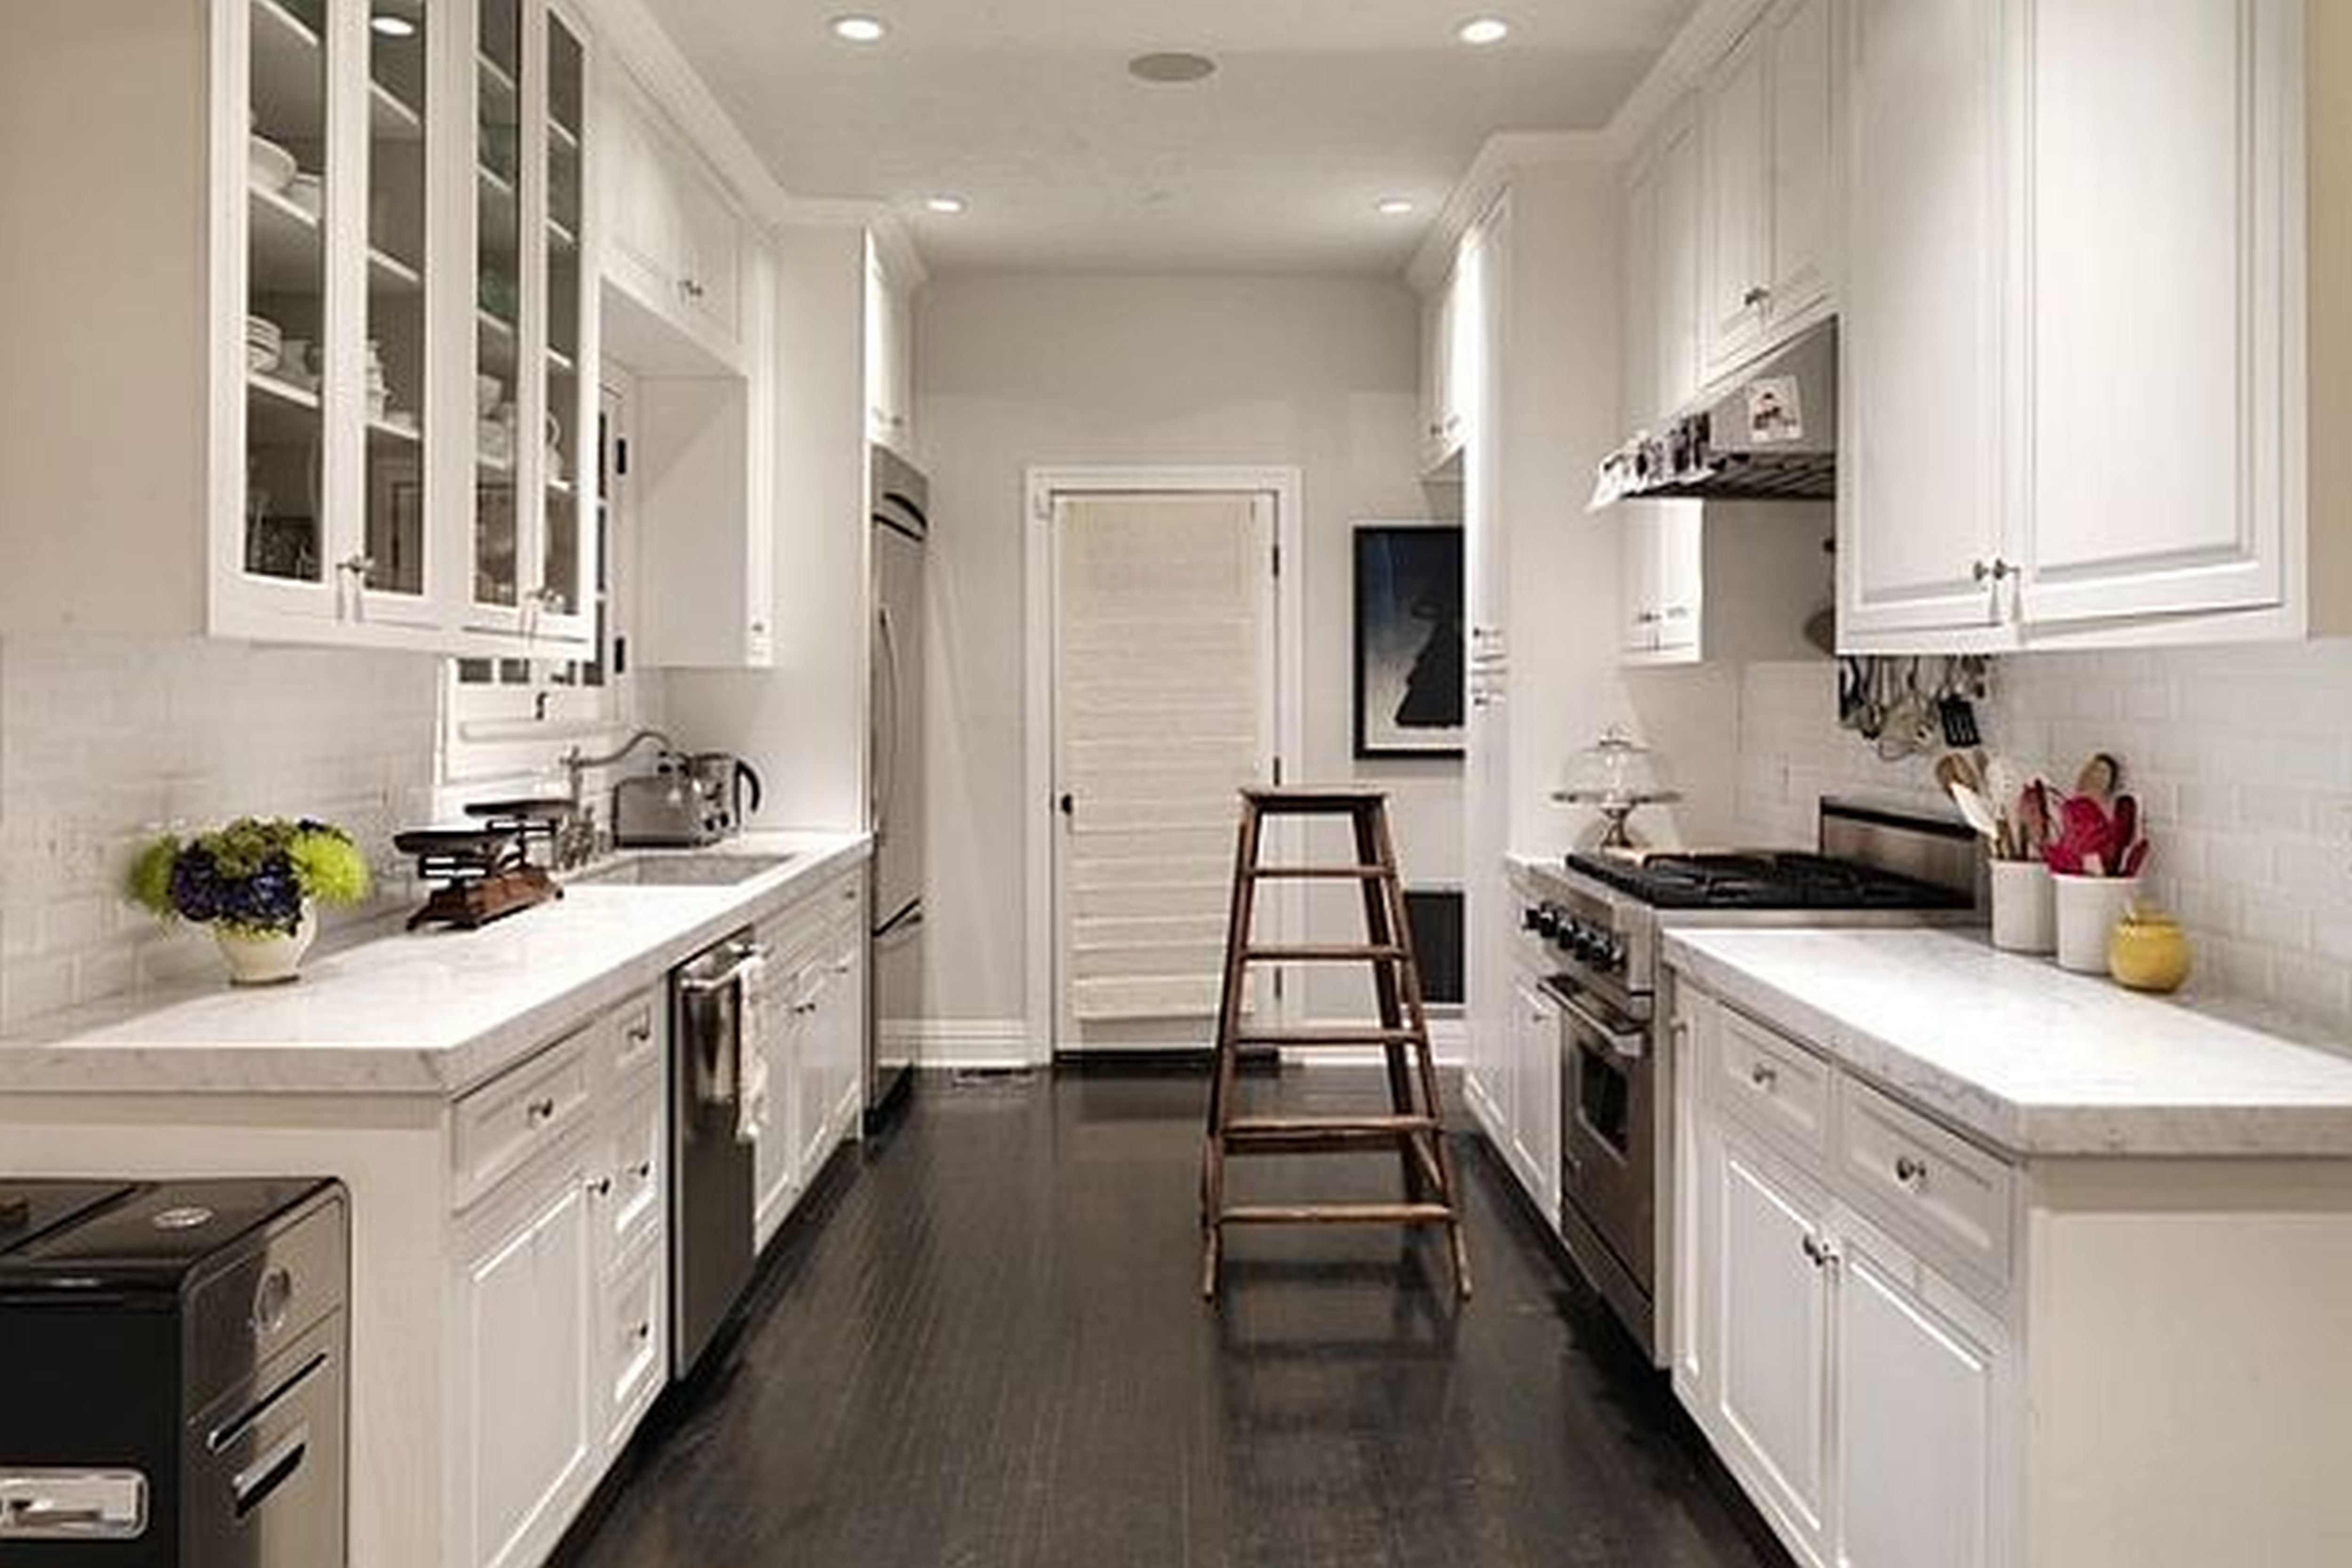 ladder galley style kitchen kitchen remodel layout on kitchen remodeling ideas and designs lowe s id=52146